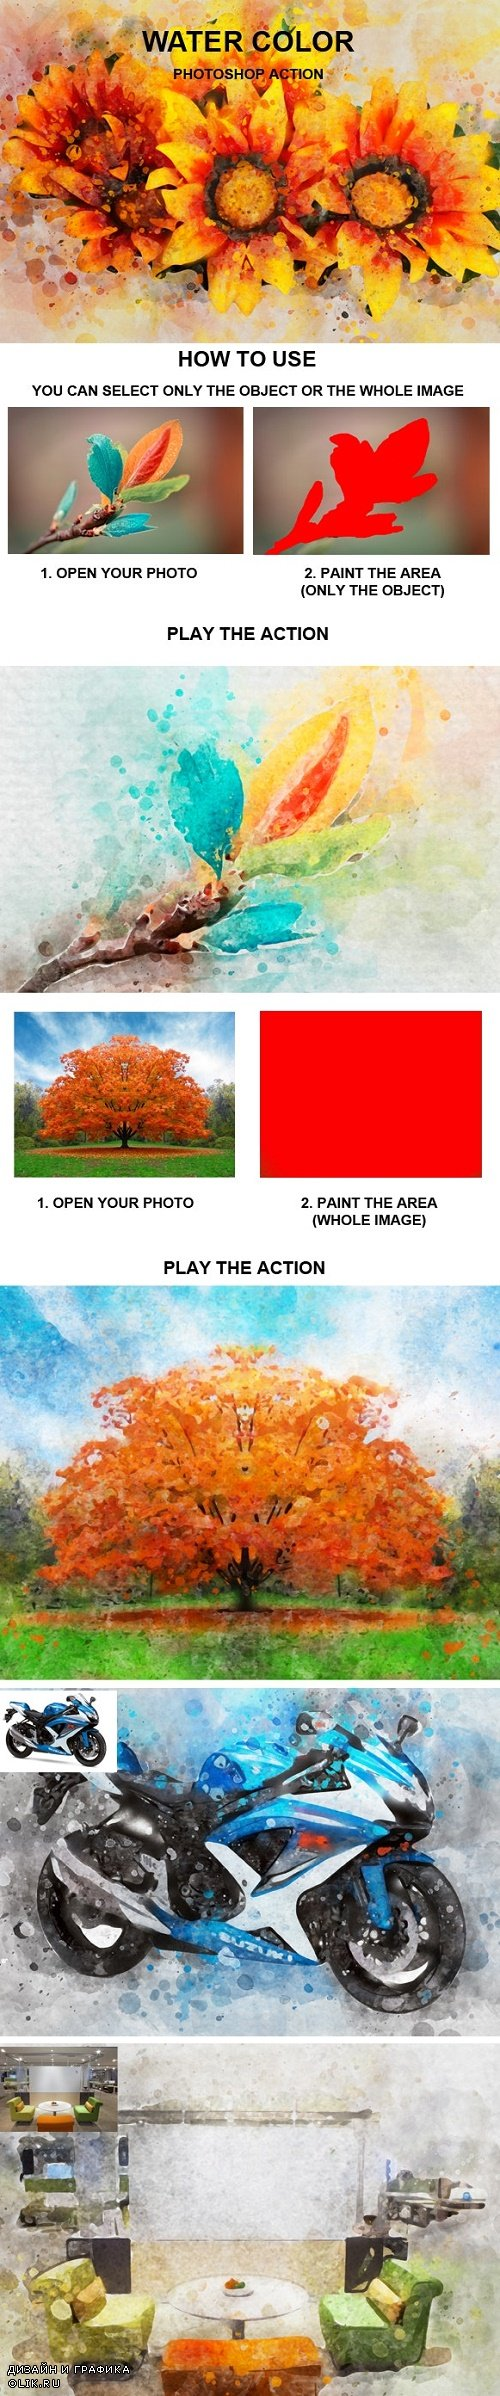 Water Color Photoshop Action 24119188